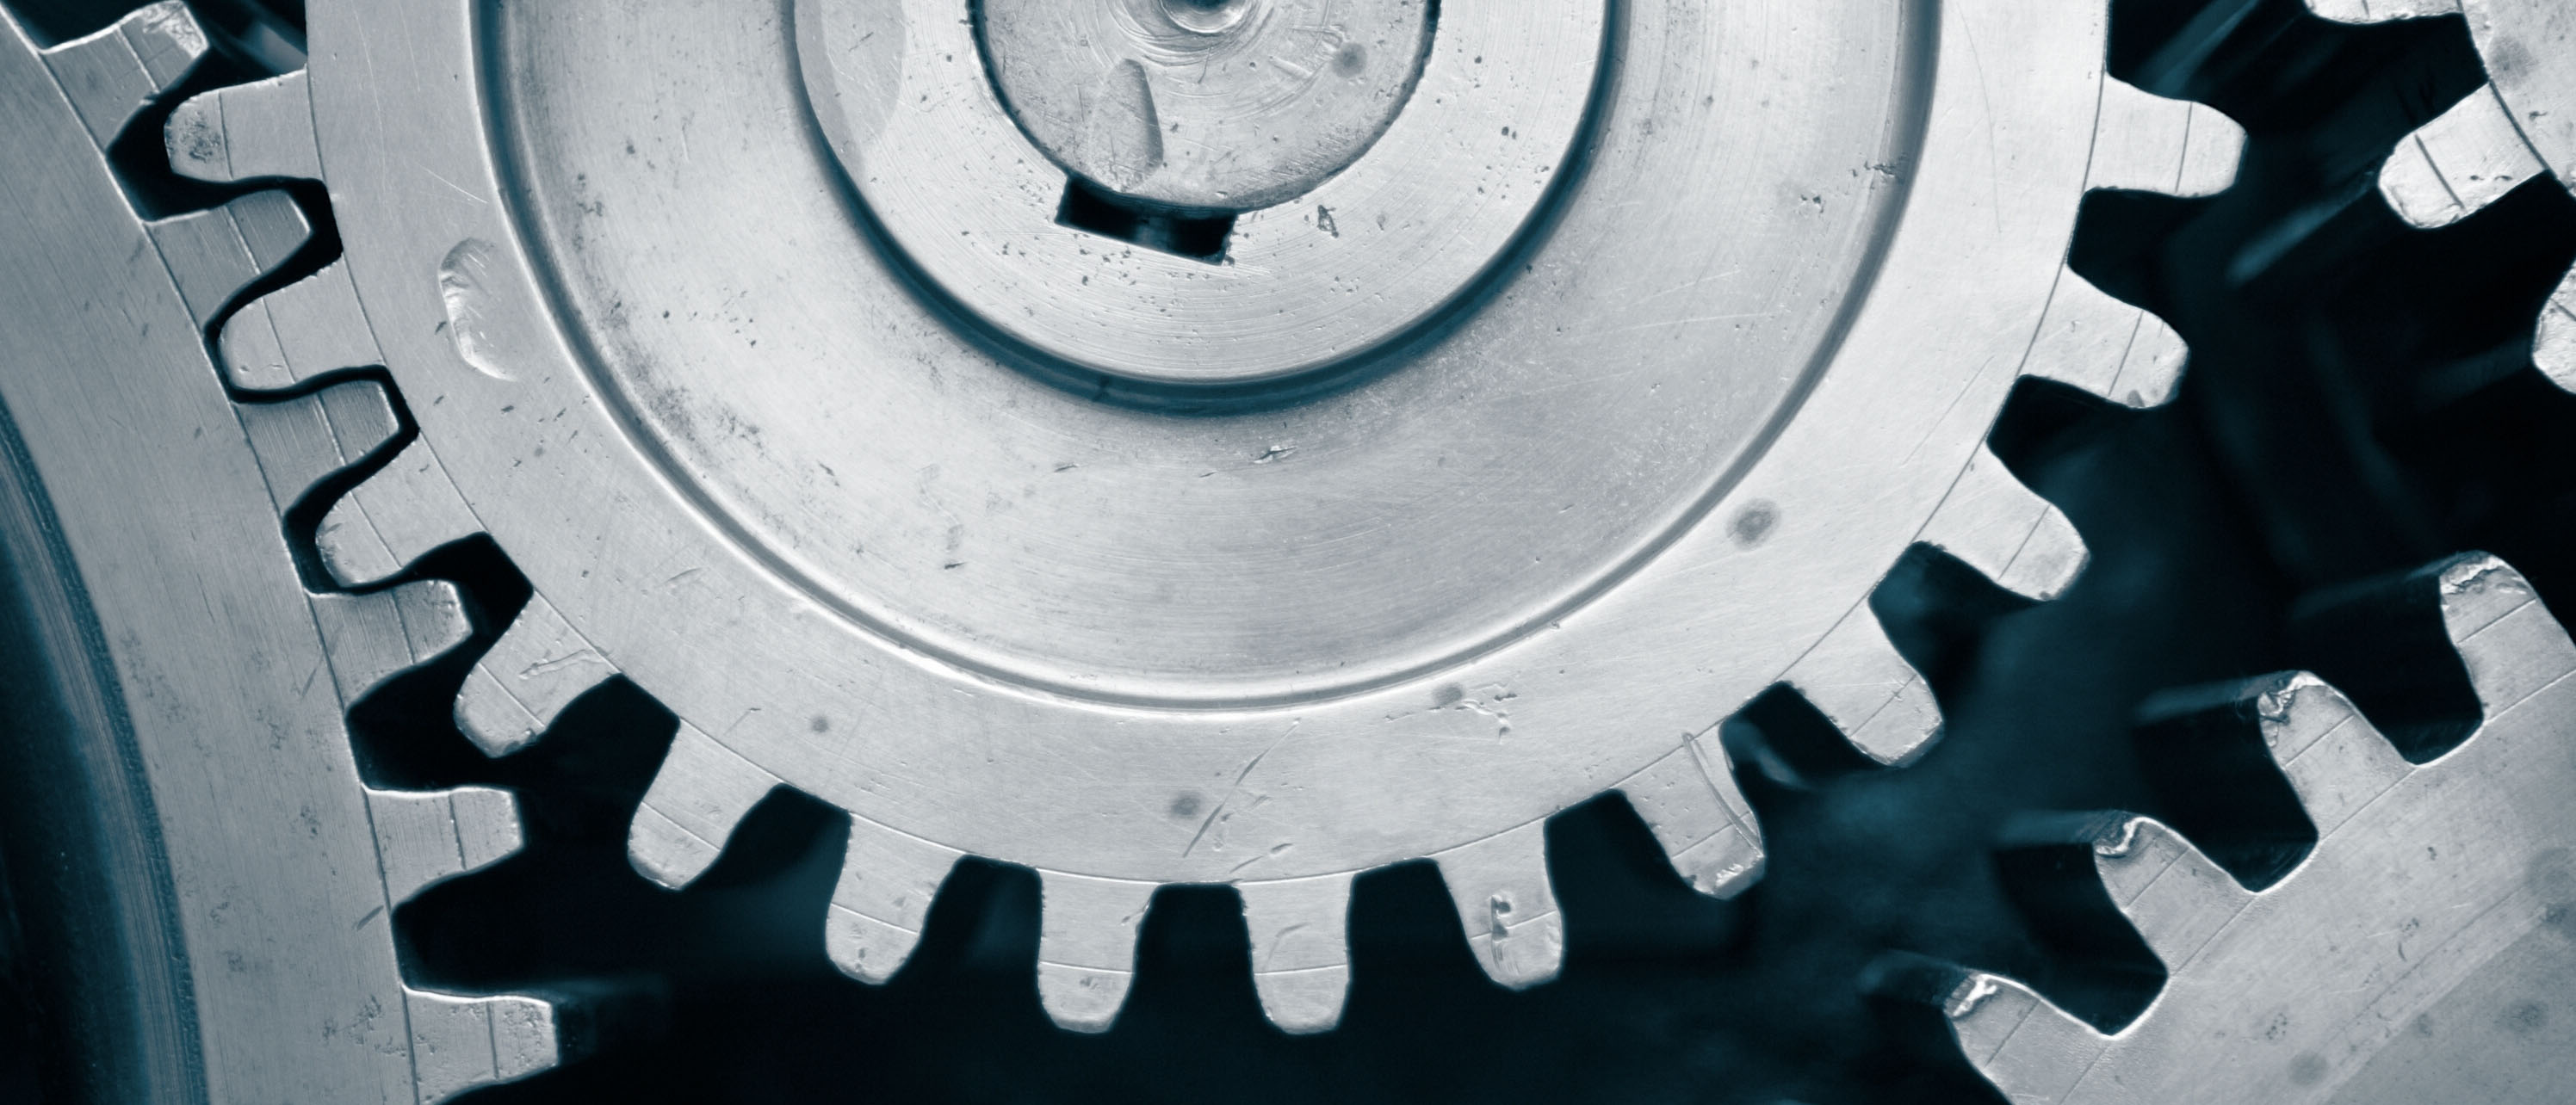 Picture of industrial gears.